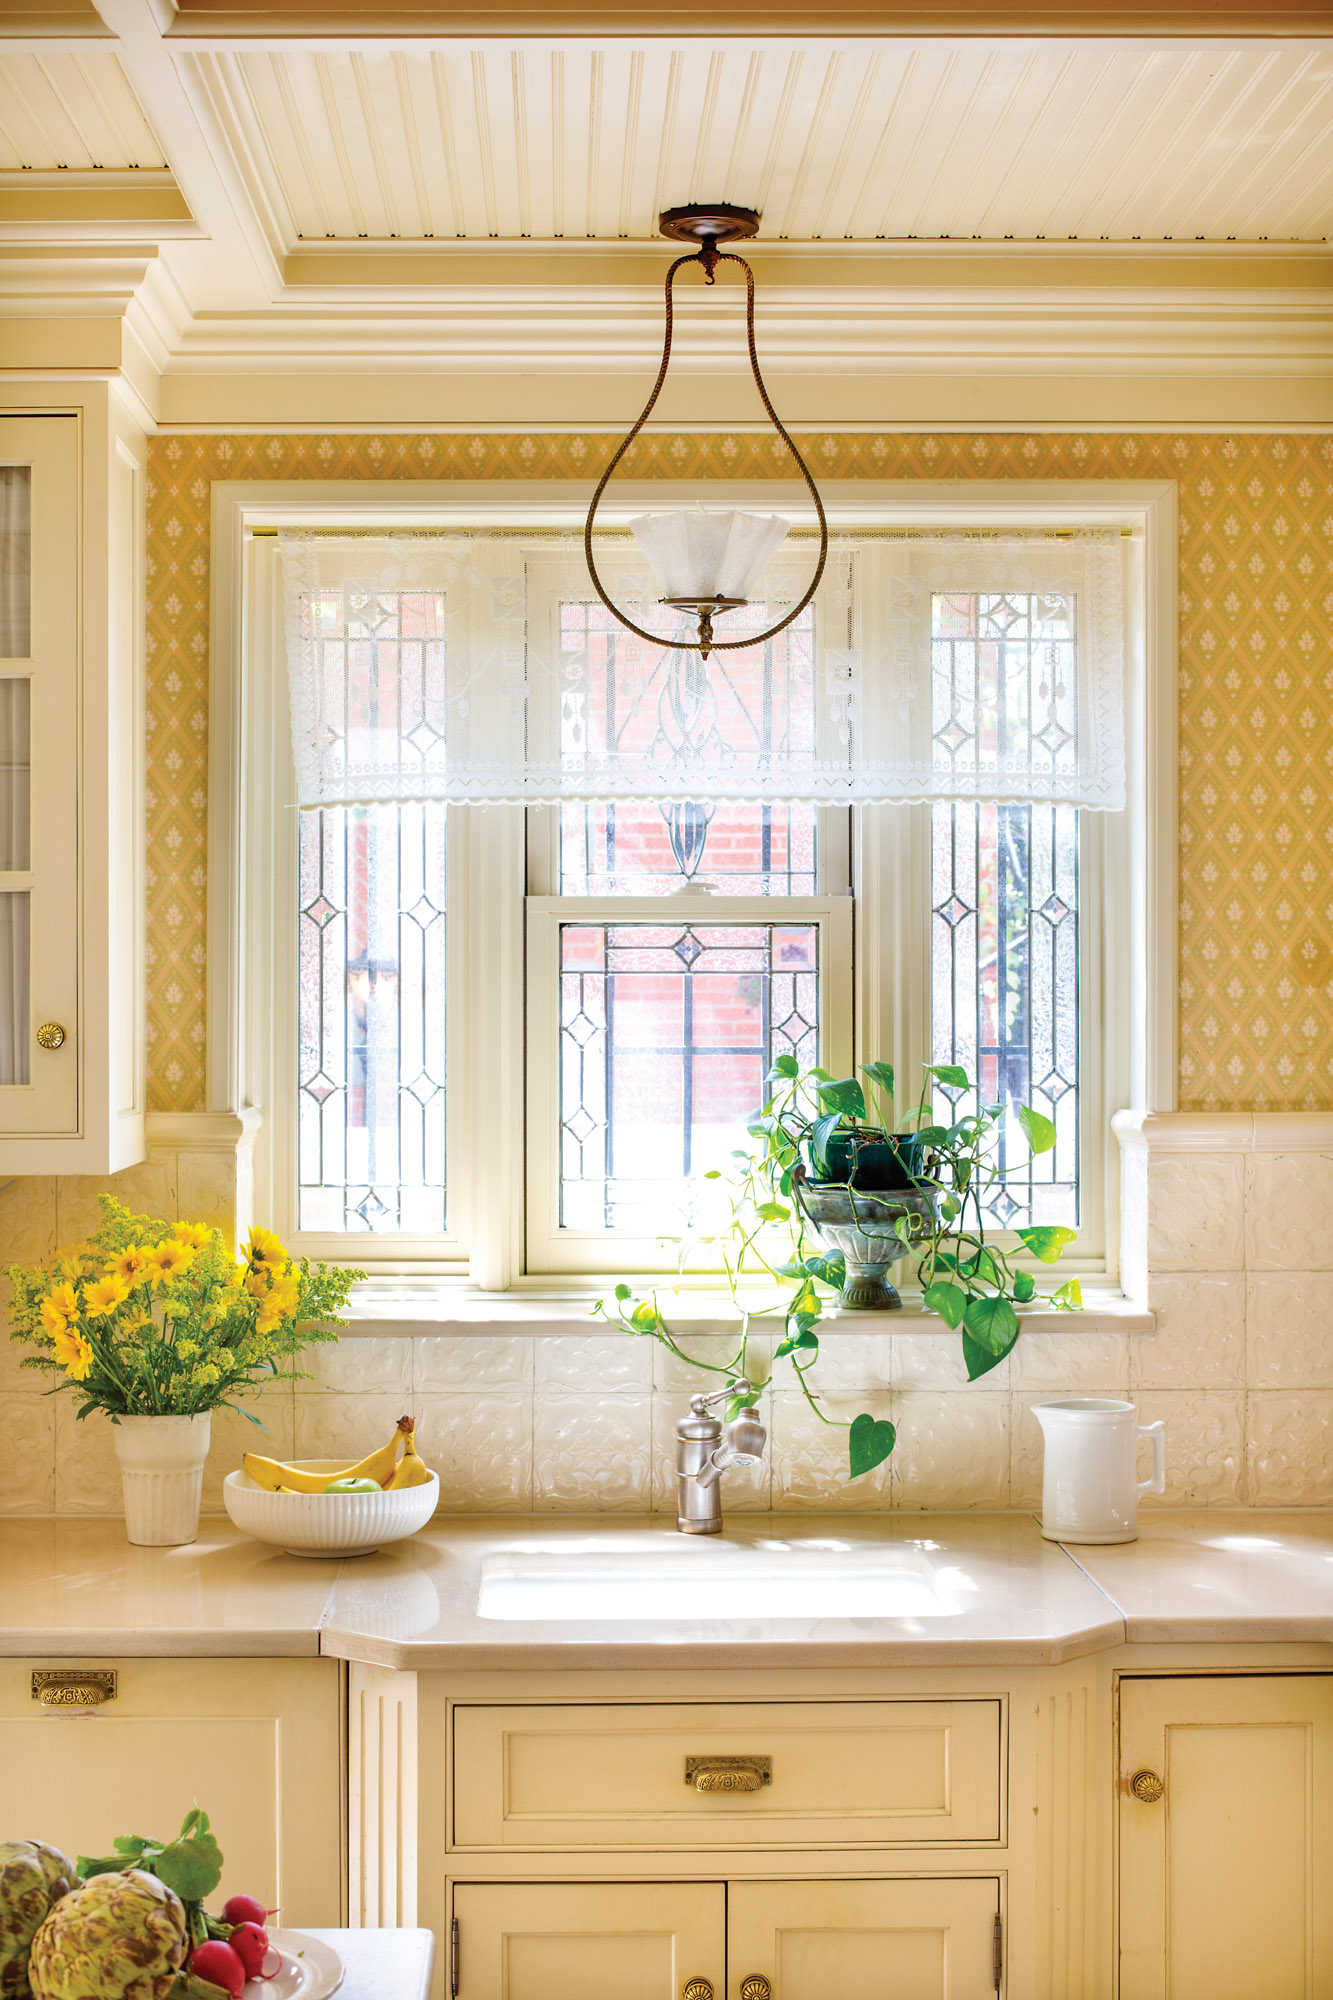 ivory-and-yellow kitchen